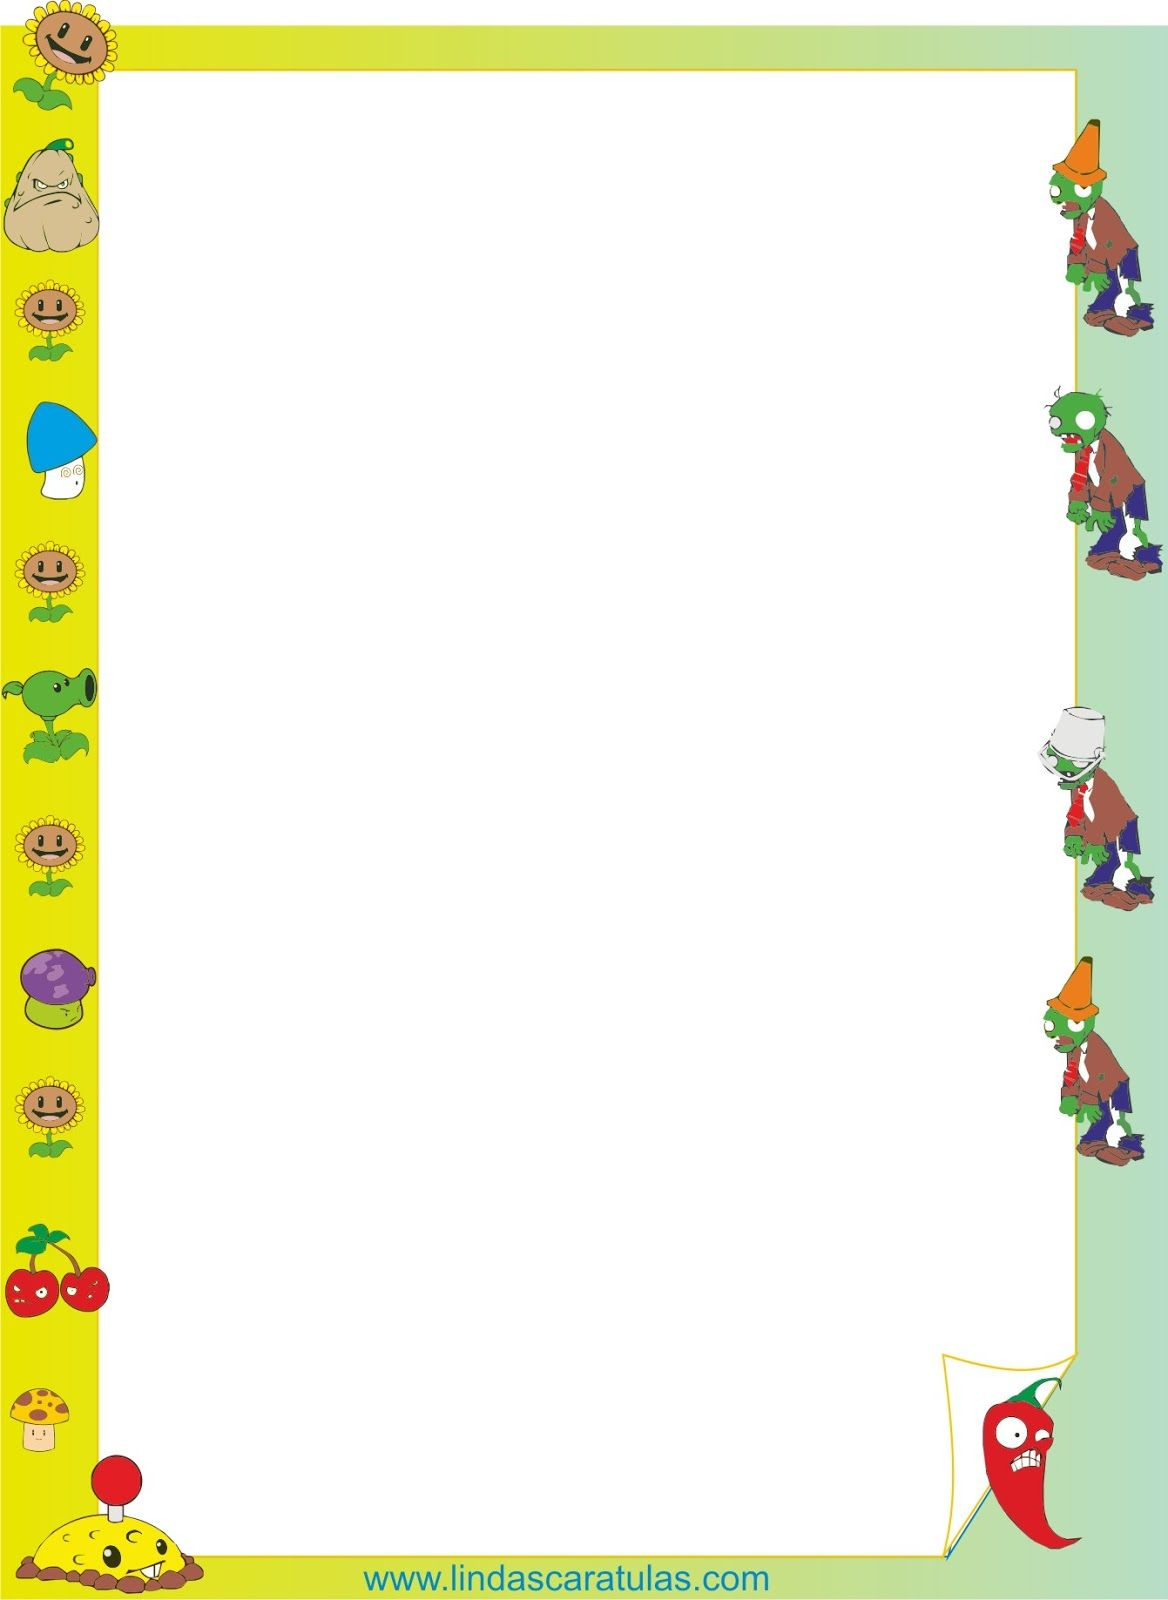 Borders for kid imagenes para colorear plantas vs zombies caratulas escolares pinterest - Marcos para plantas ...